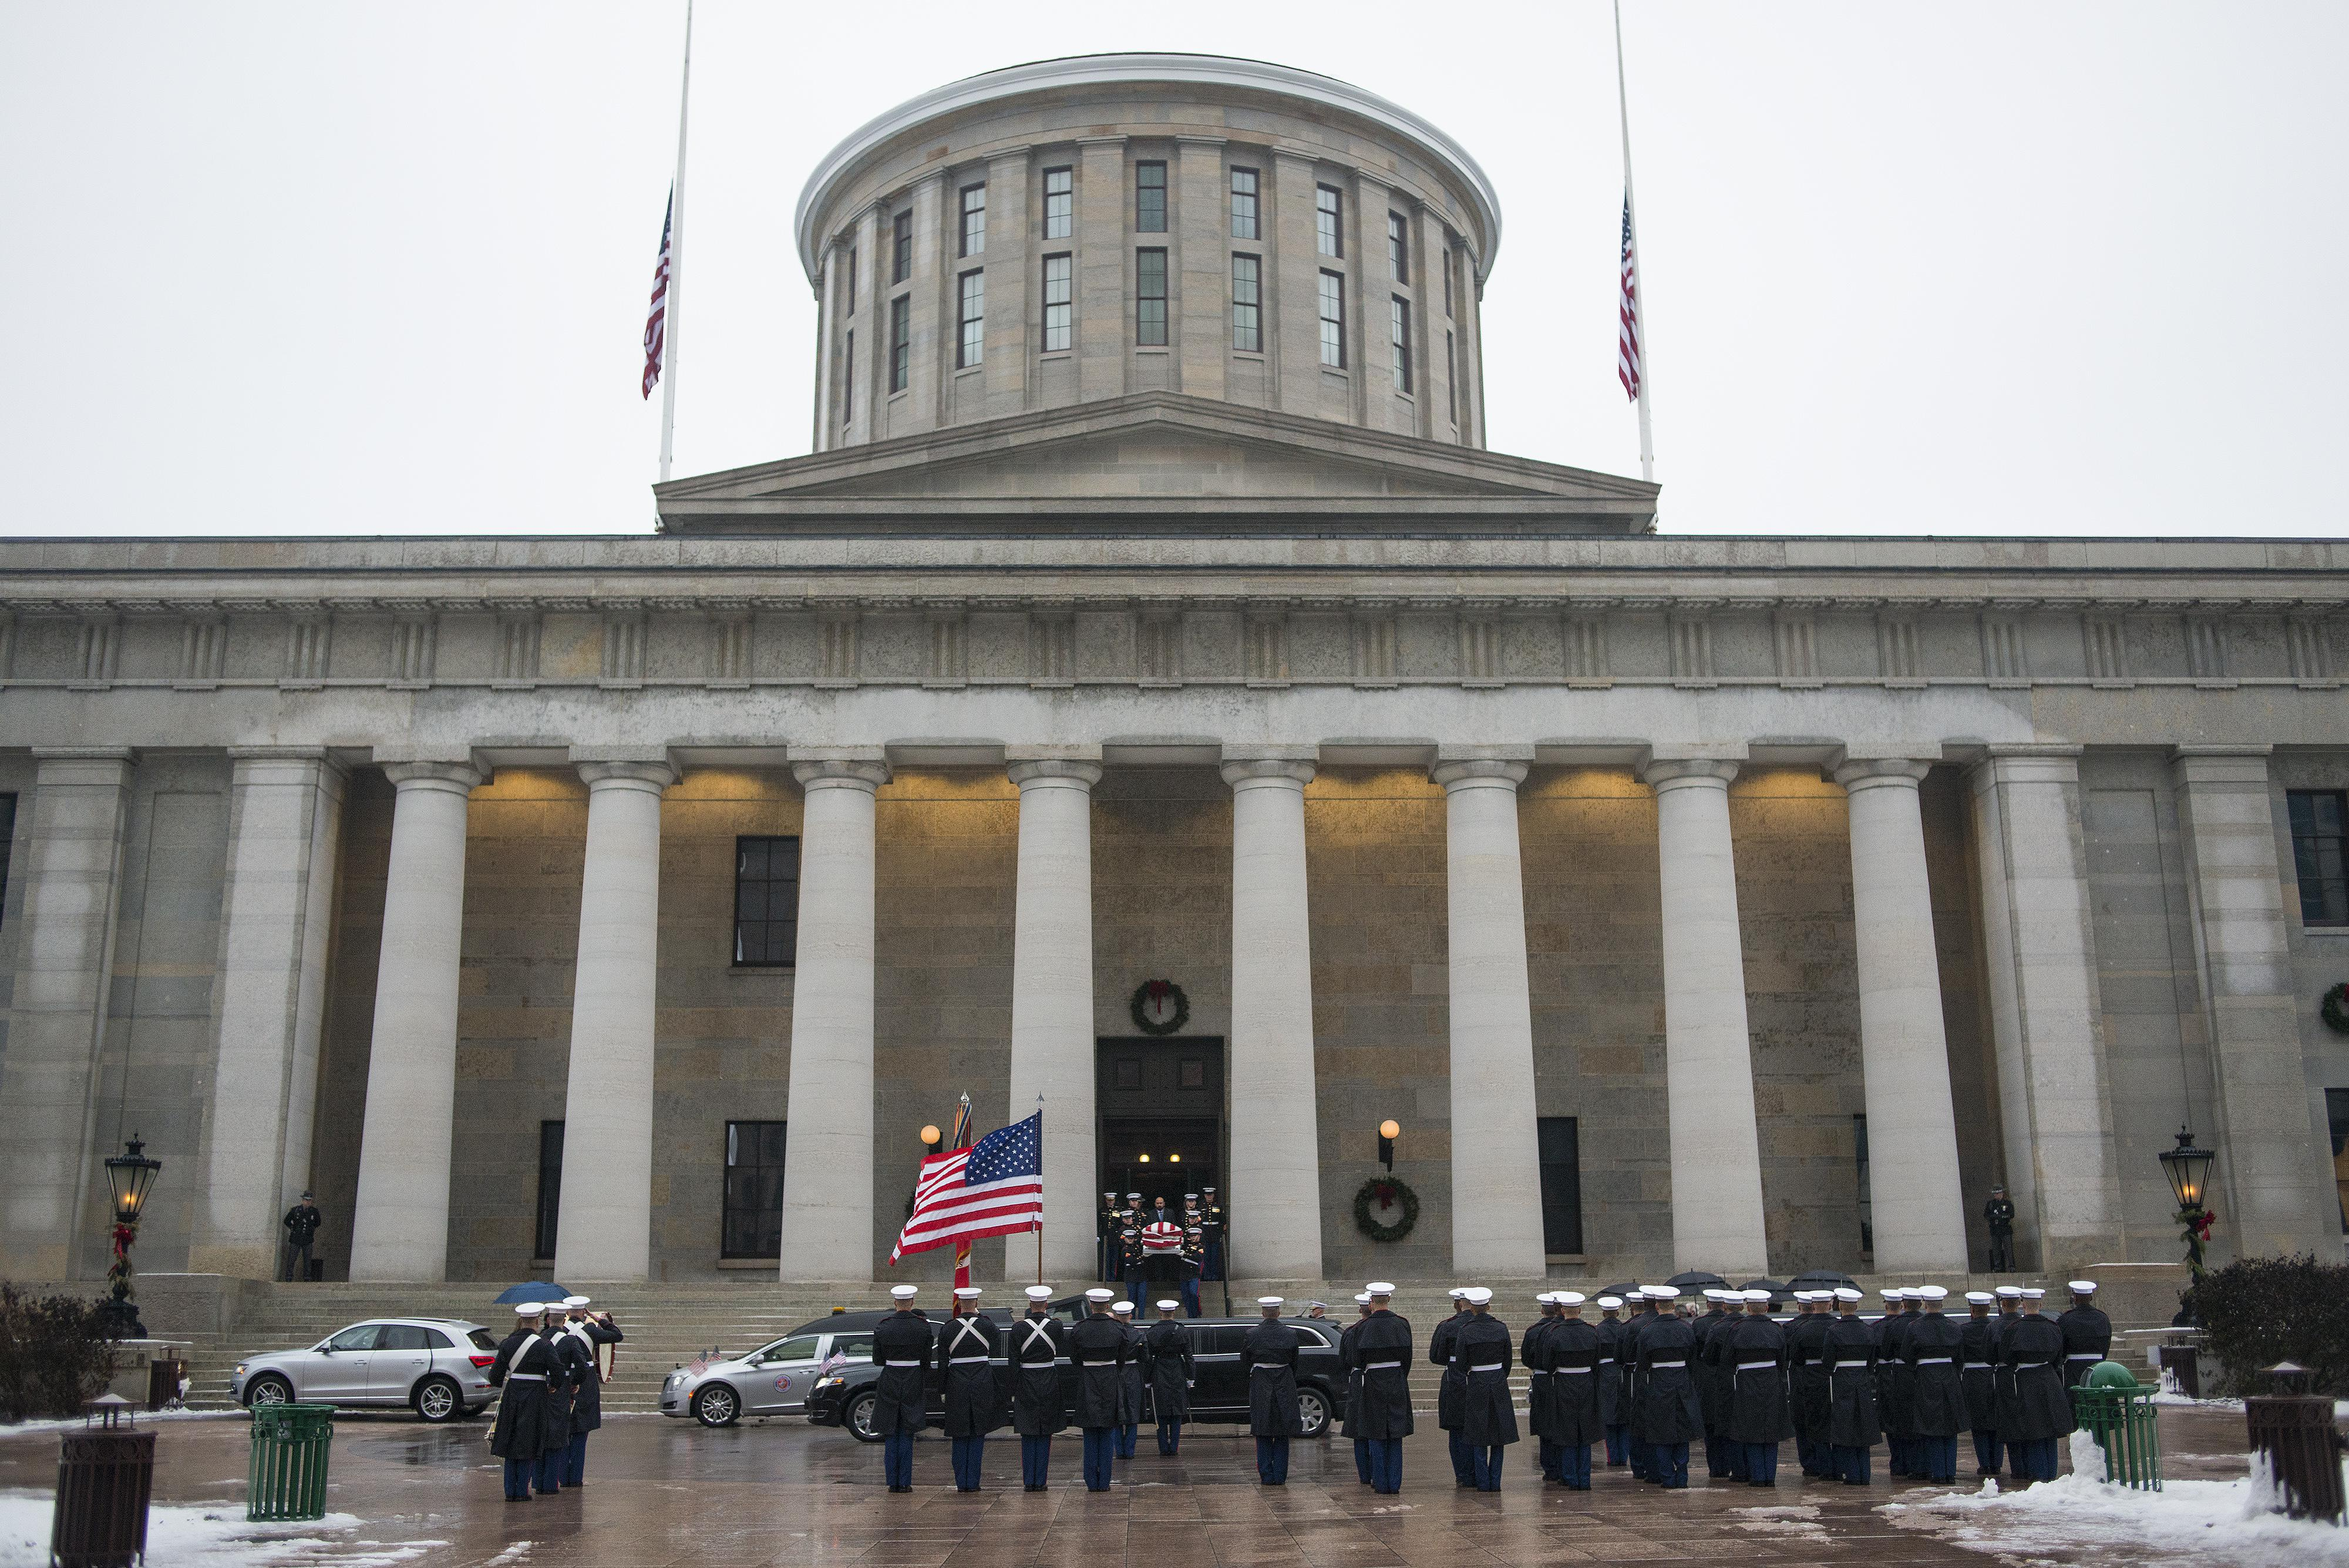 A picture of the Ohio statehouse